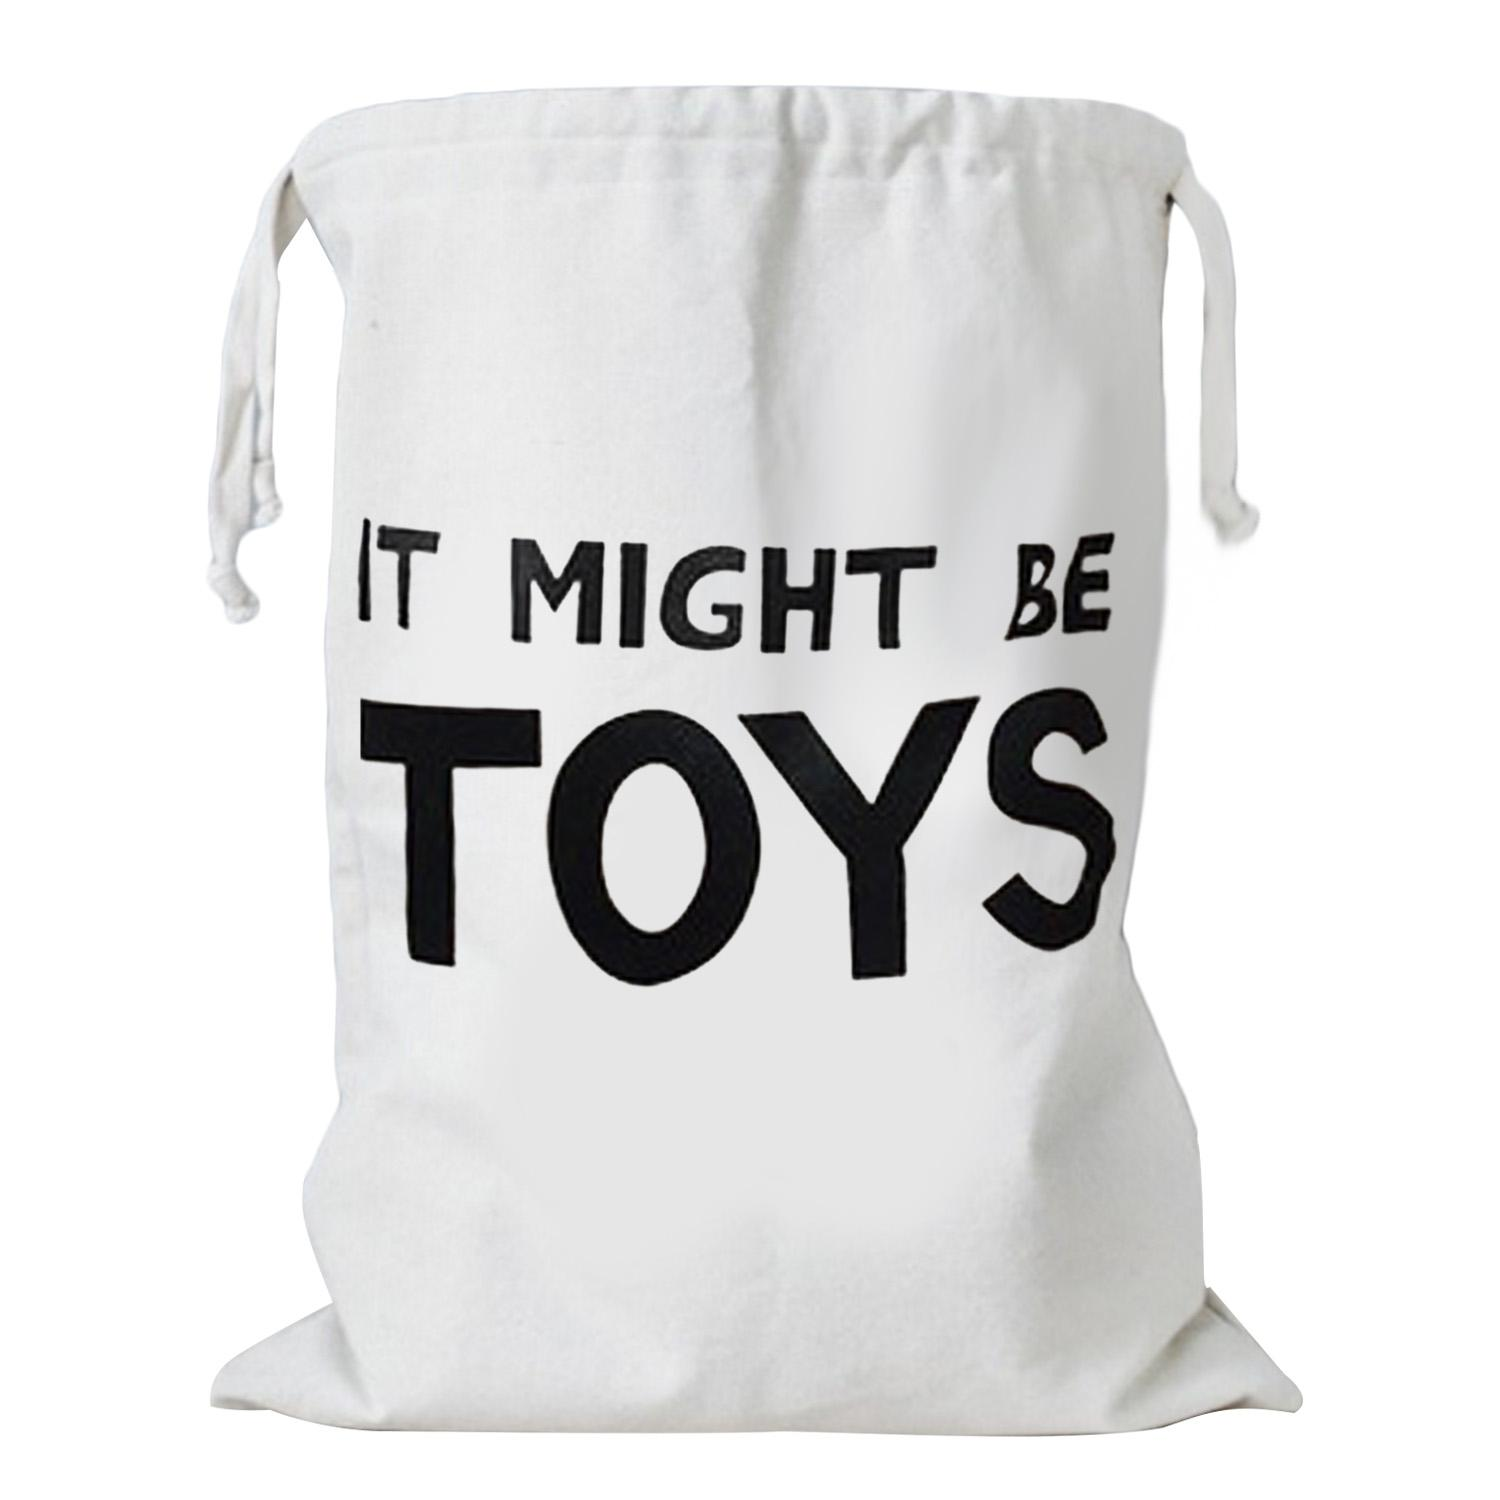 Fashion Cute Cartoon Canvas Drawstring Storage Bag Kids Toys Clothing Books Laundry Bag Organizer Basket For Children Room Nursery Home Decor English Word Style By Duha.